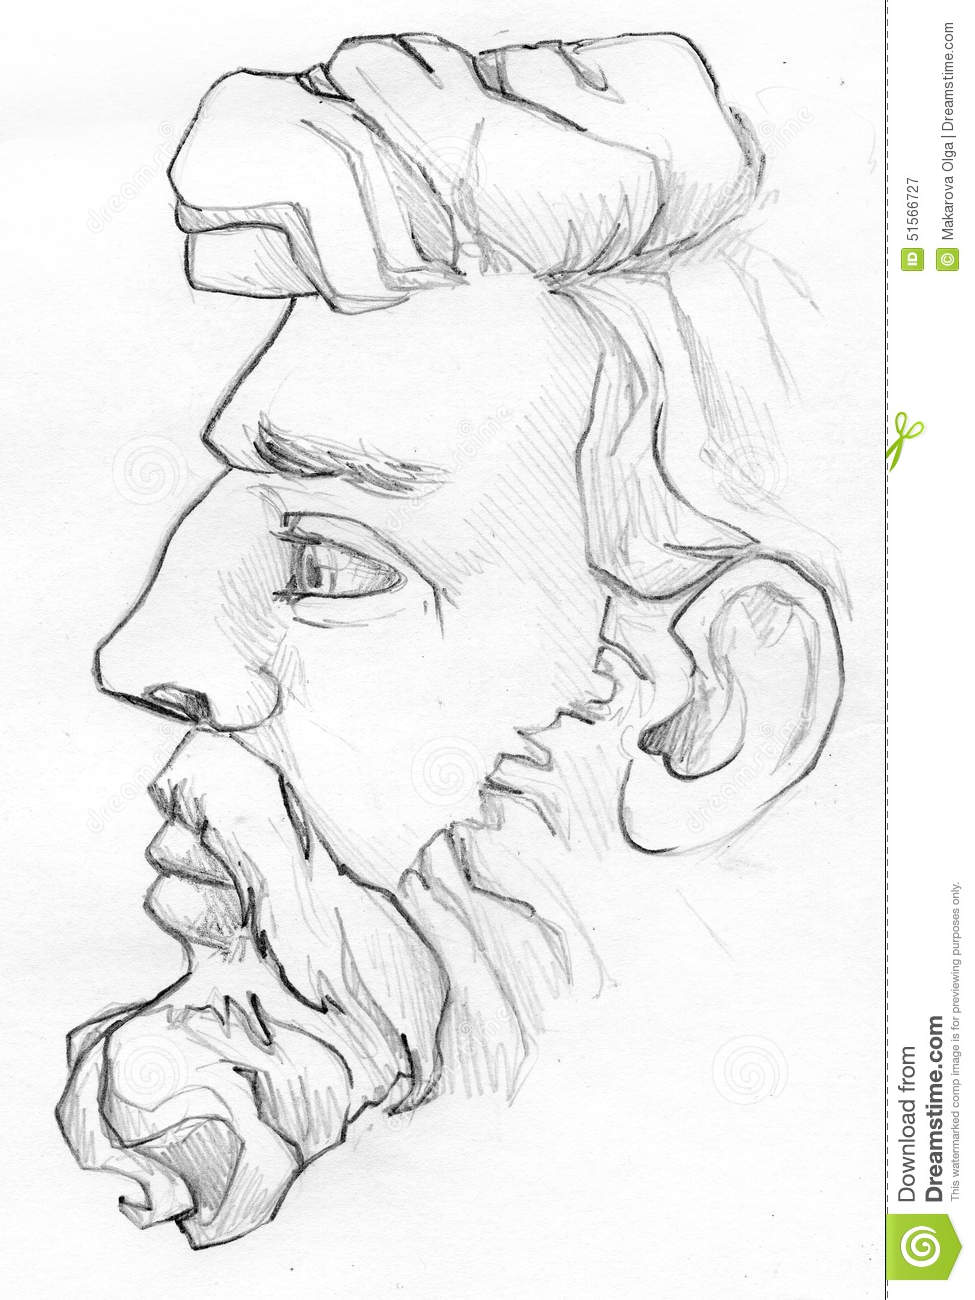 Bearded man pencil sketch stock illustrations 42 bearded man pencil sketch stock illustrations vectors clipart dreamstime